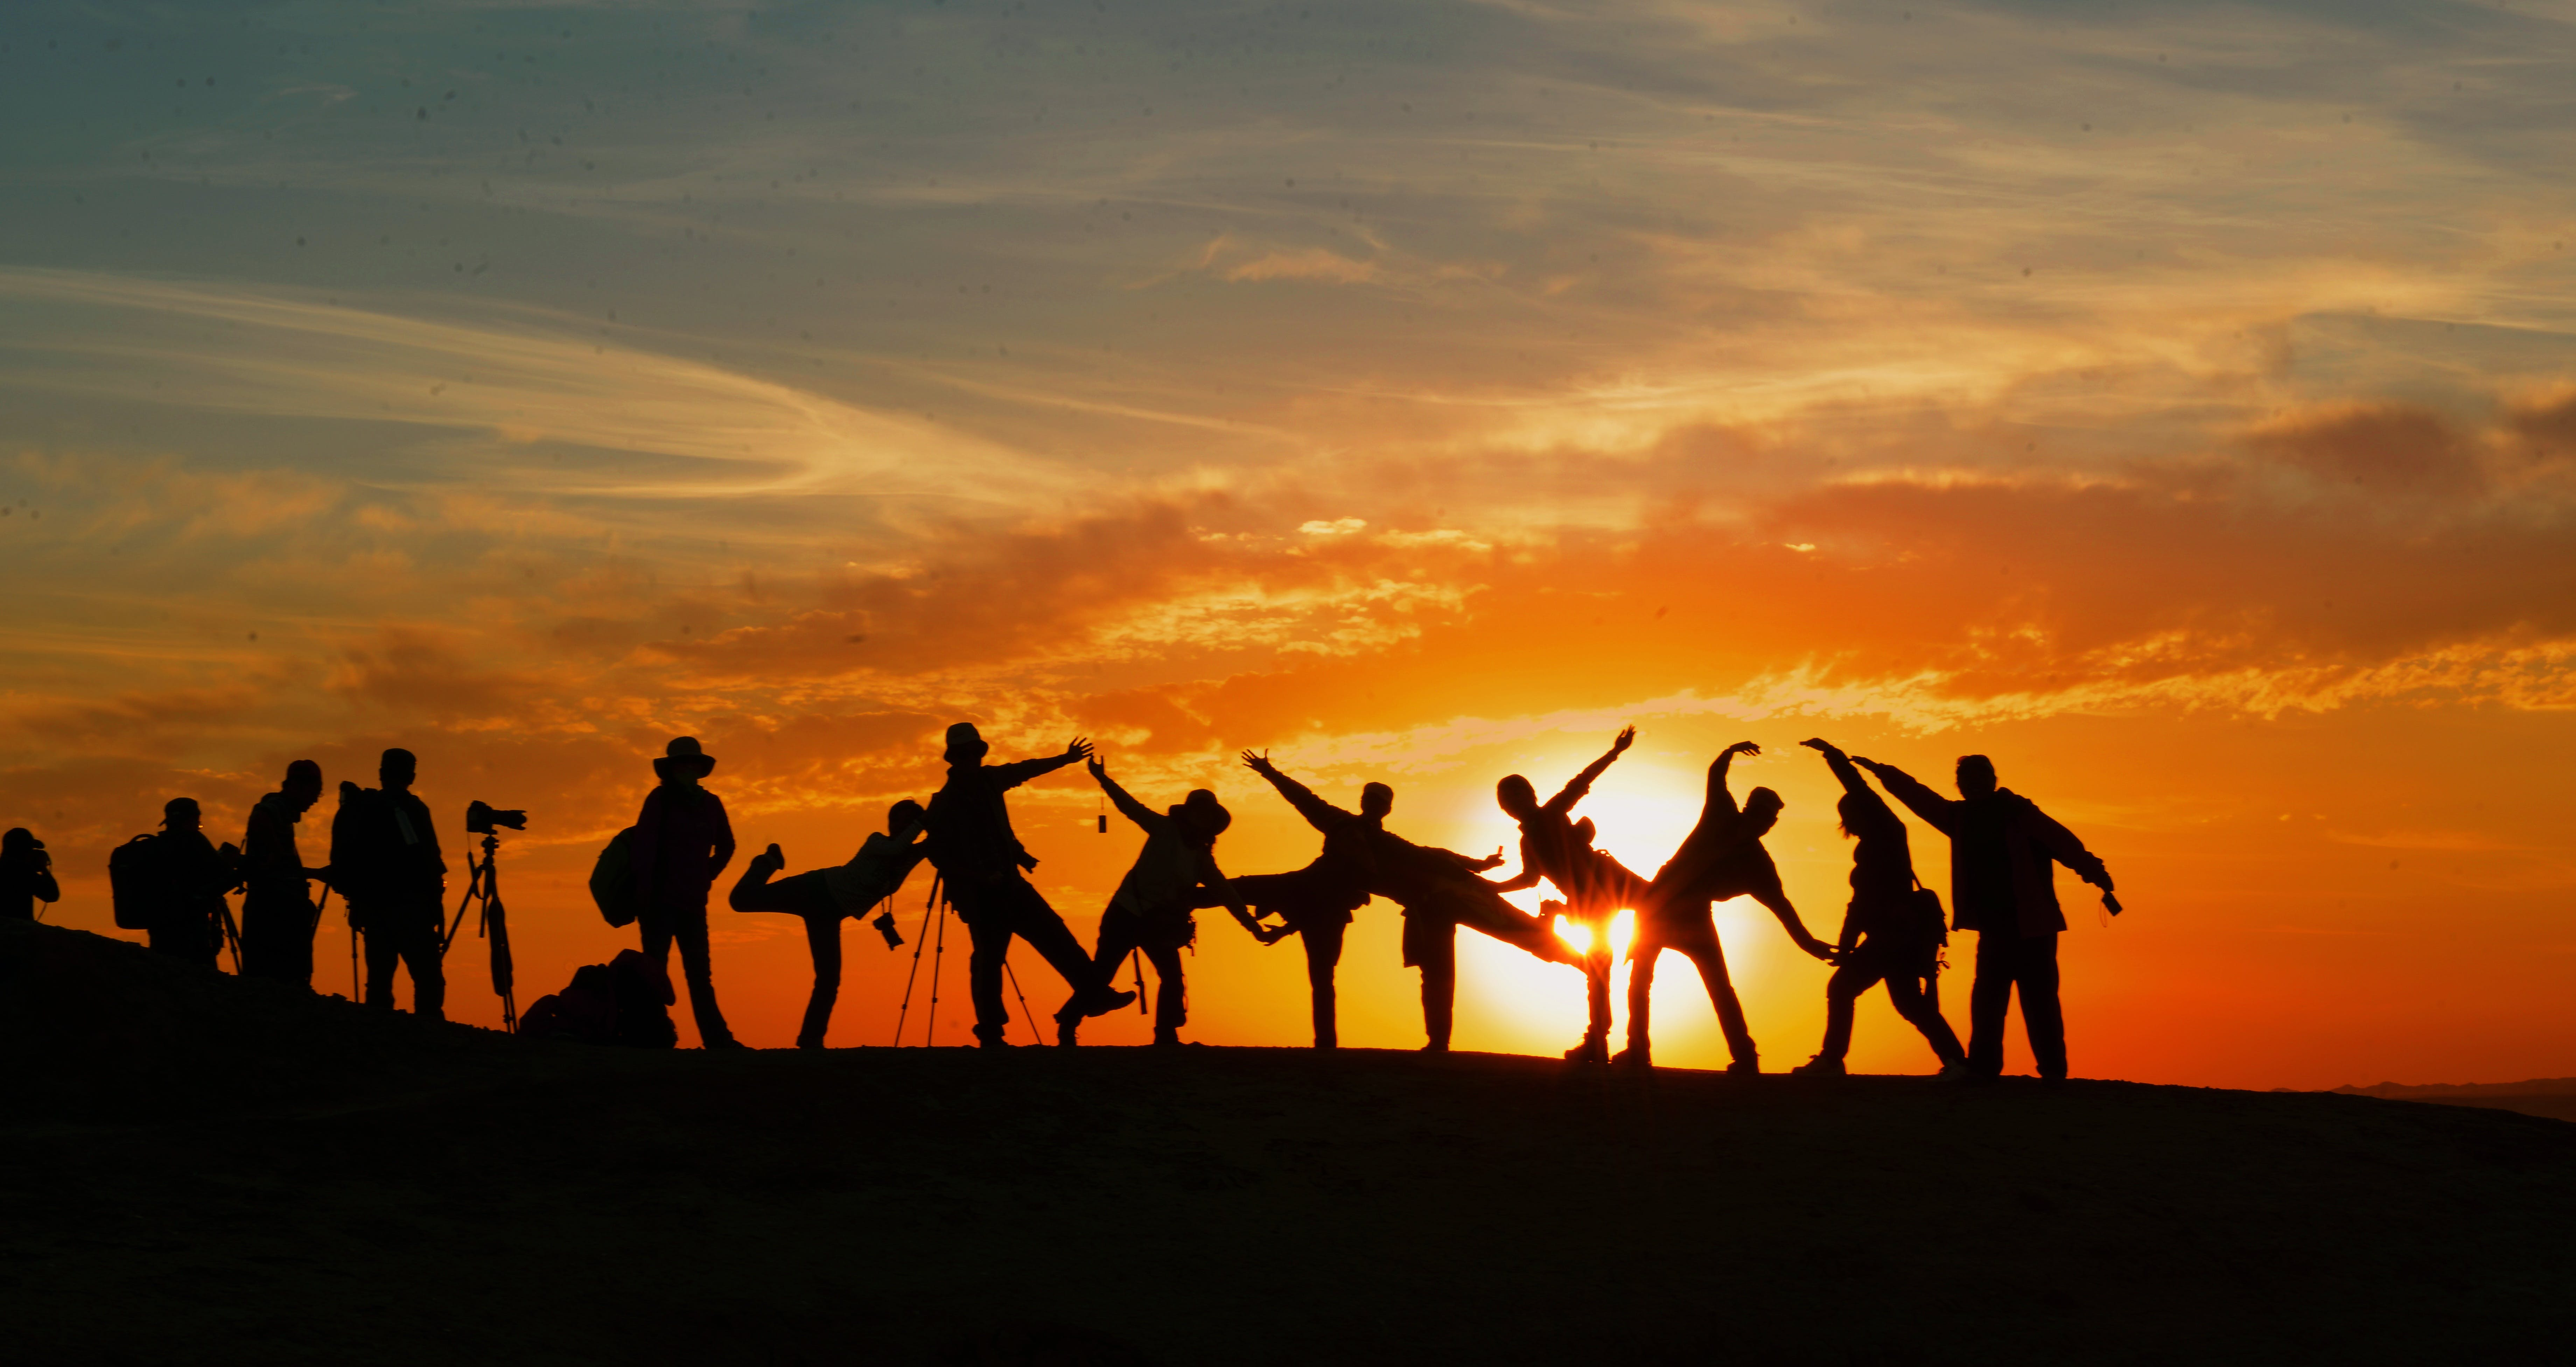 People posing in the sunset